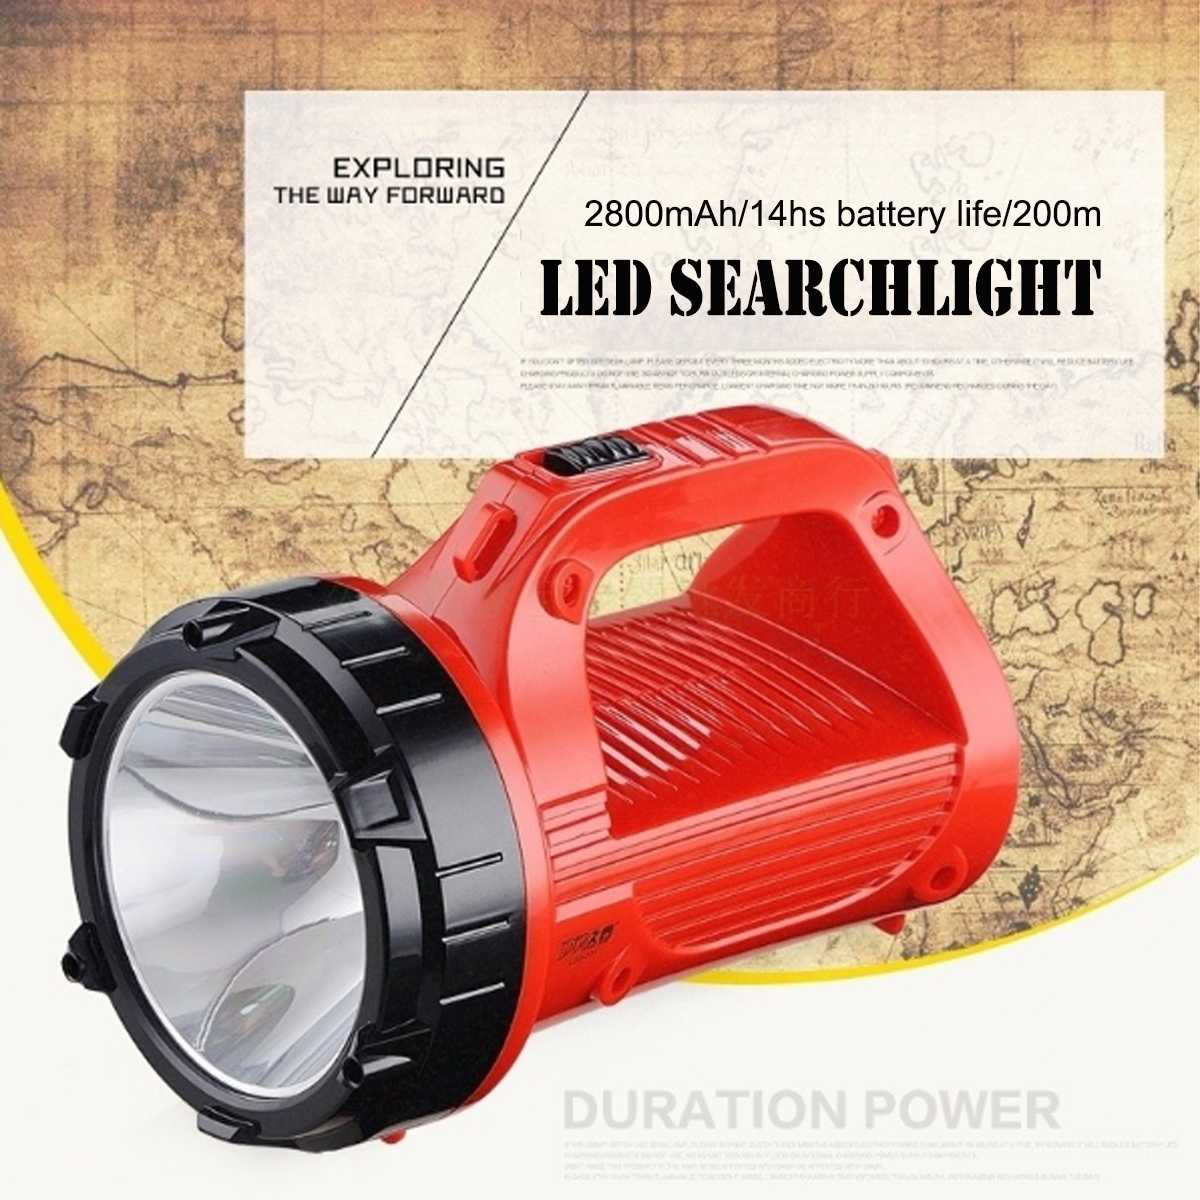 Led Portable Spotlight Led Work Light Rechargeable 3W 2800mAh 100-200m 7/14Hs Outdoor Flashlight Torch for Caving Hiking CampingLed Portable Spotlight Led Work Light Rechargeable 3W 2800mAh 100-200m 7/14Hs Outdoor Flashlight Torch for Caving Hiking Camping